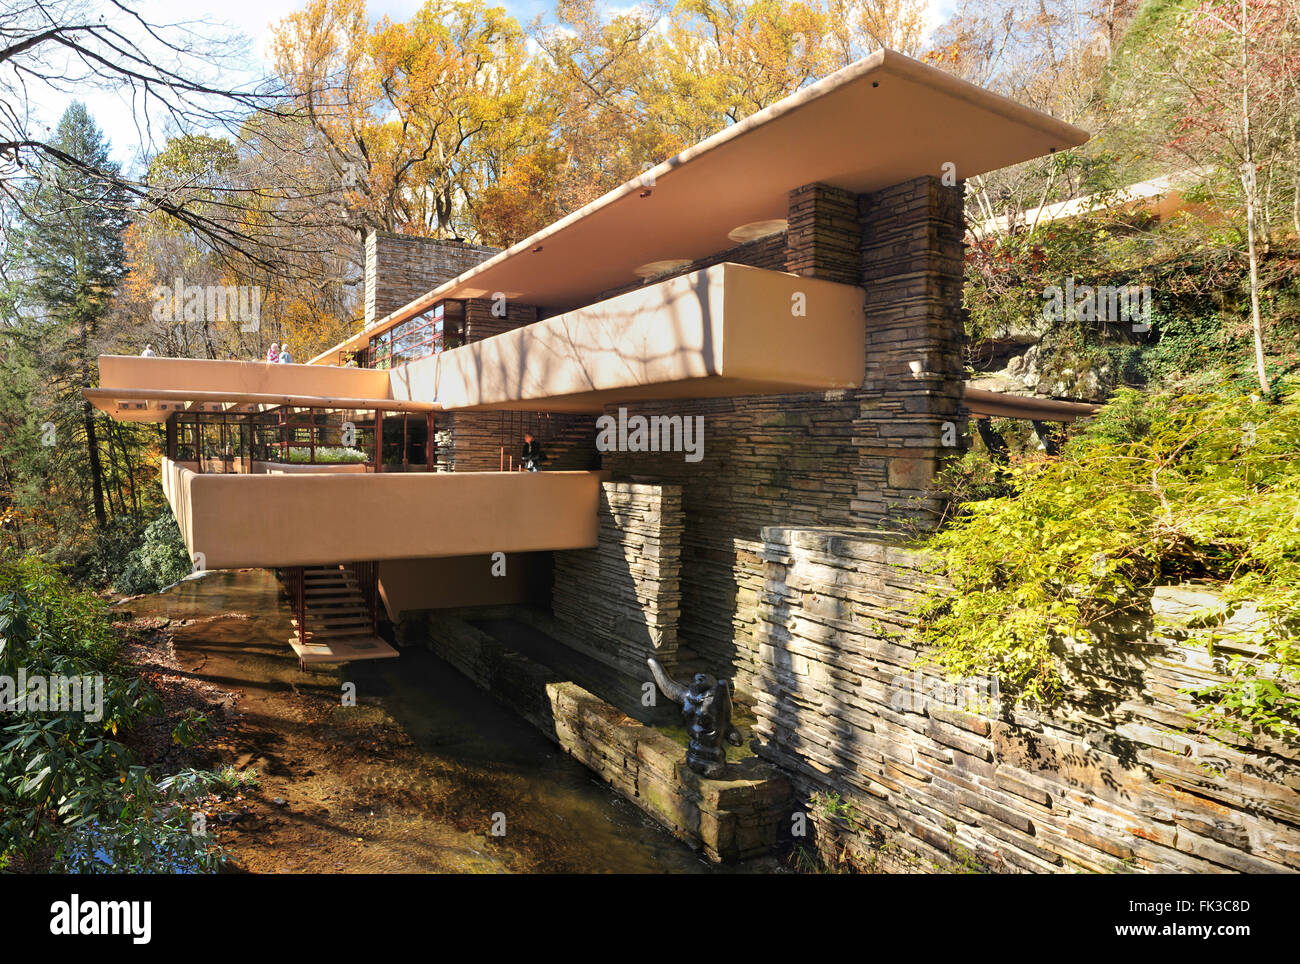 Mill Run Pennsylvania USA Oct 25 The Fallingwater Designed By Architect Frank Lloyd Wright In PA 10 2011